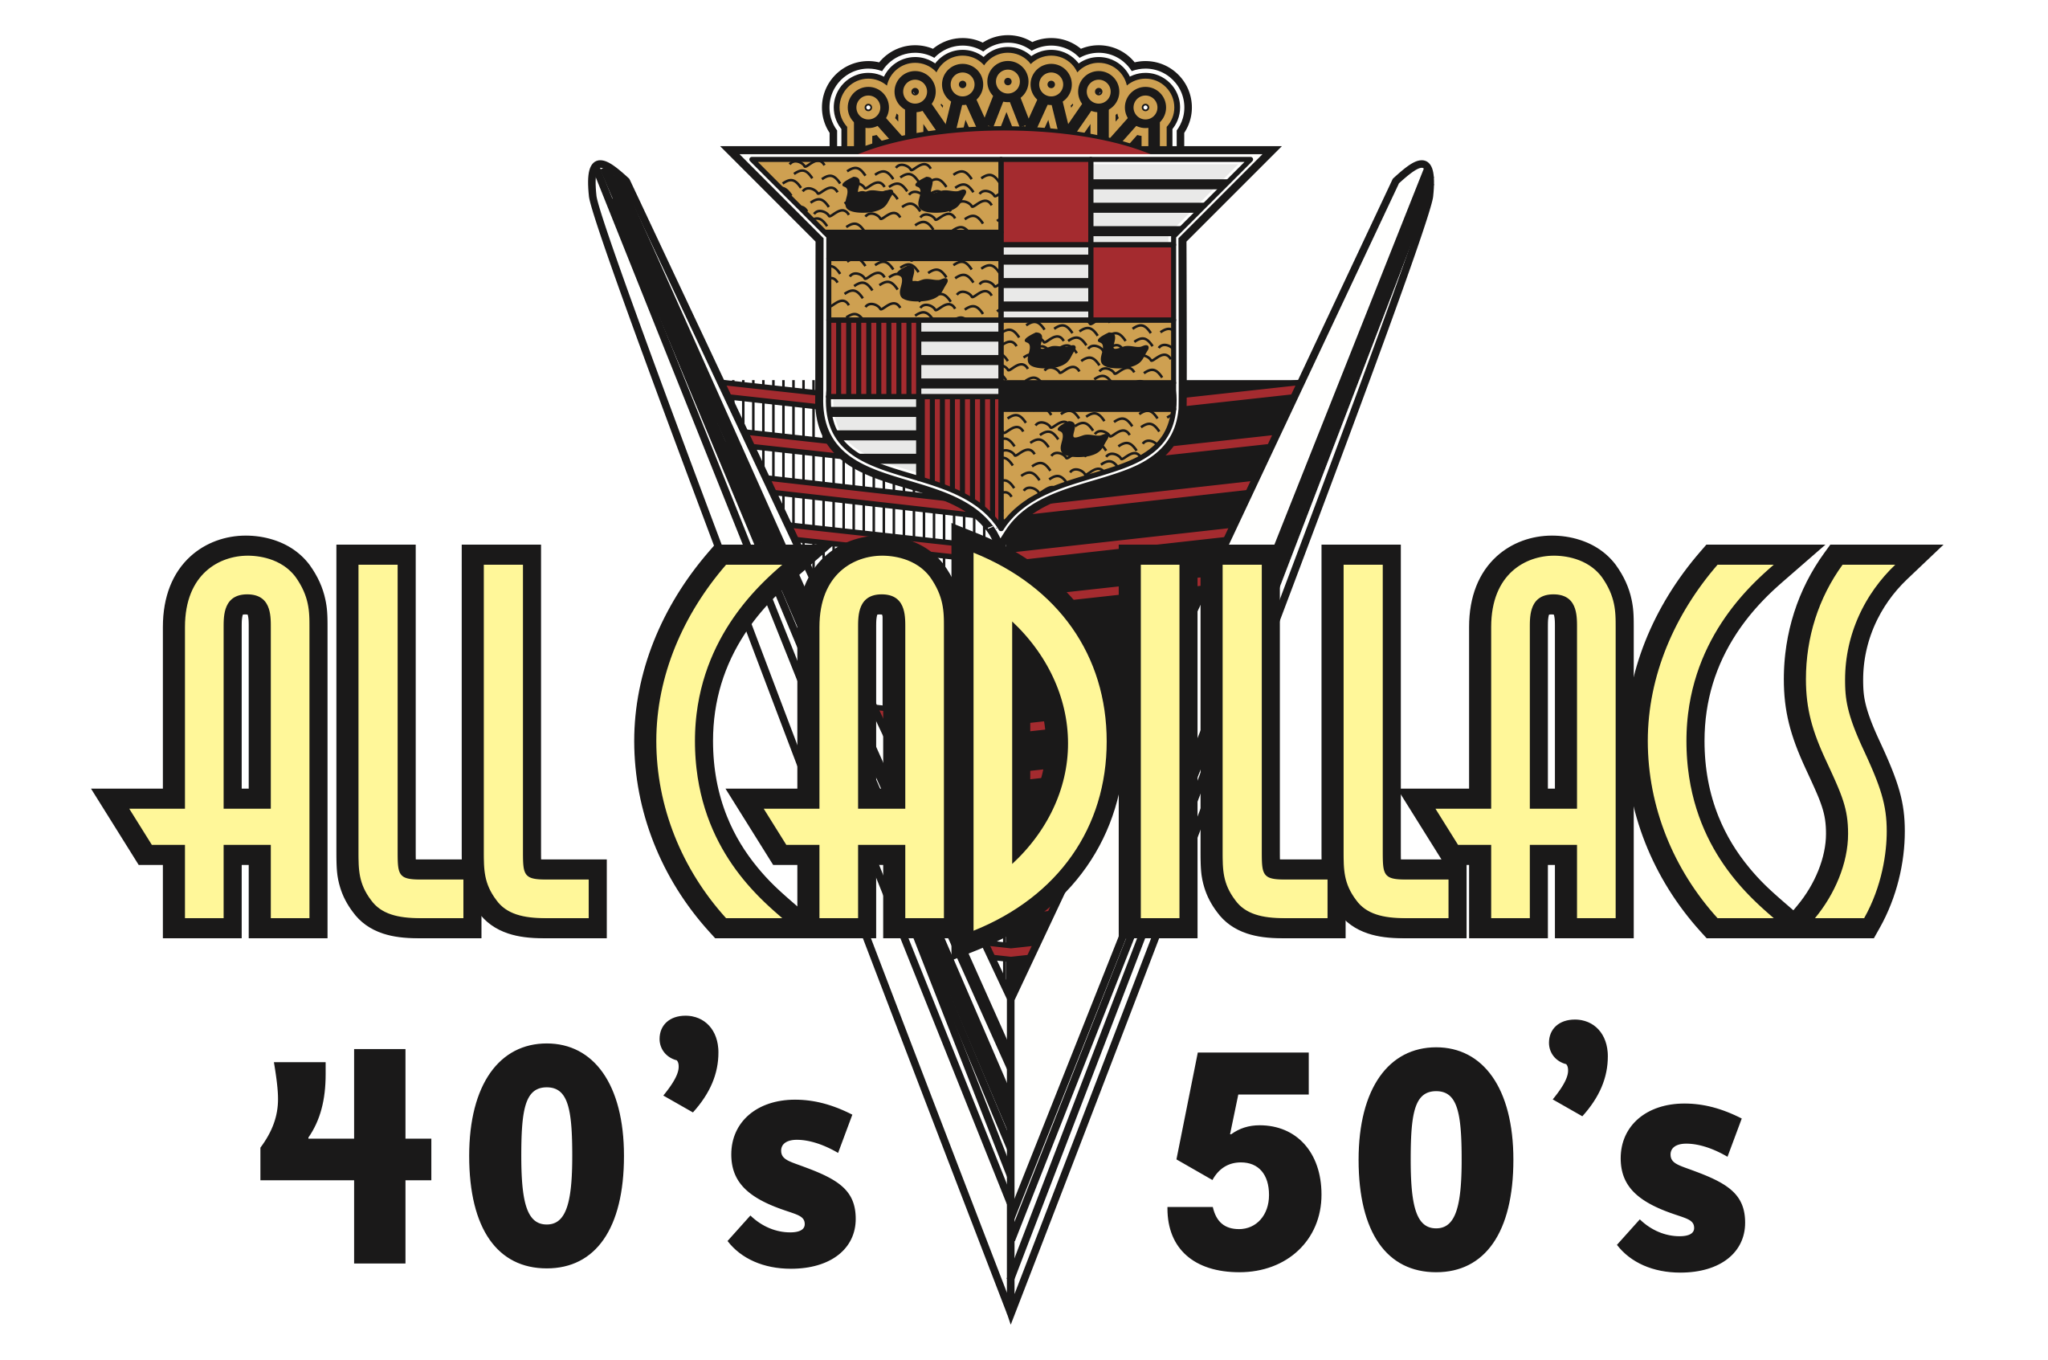 All Cadillacs of the 40s and 50s